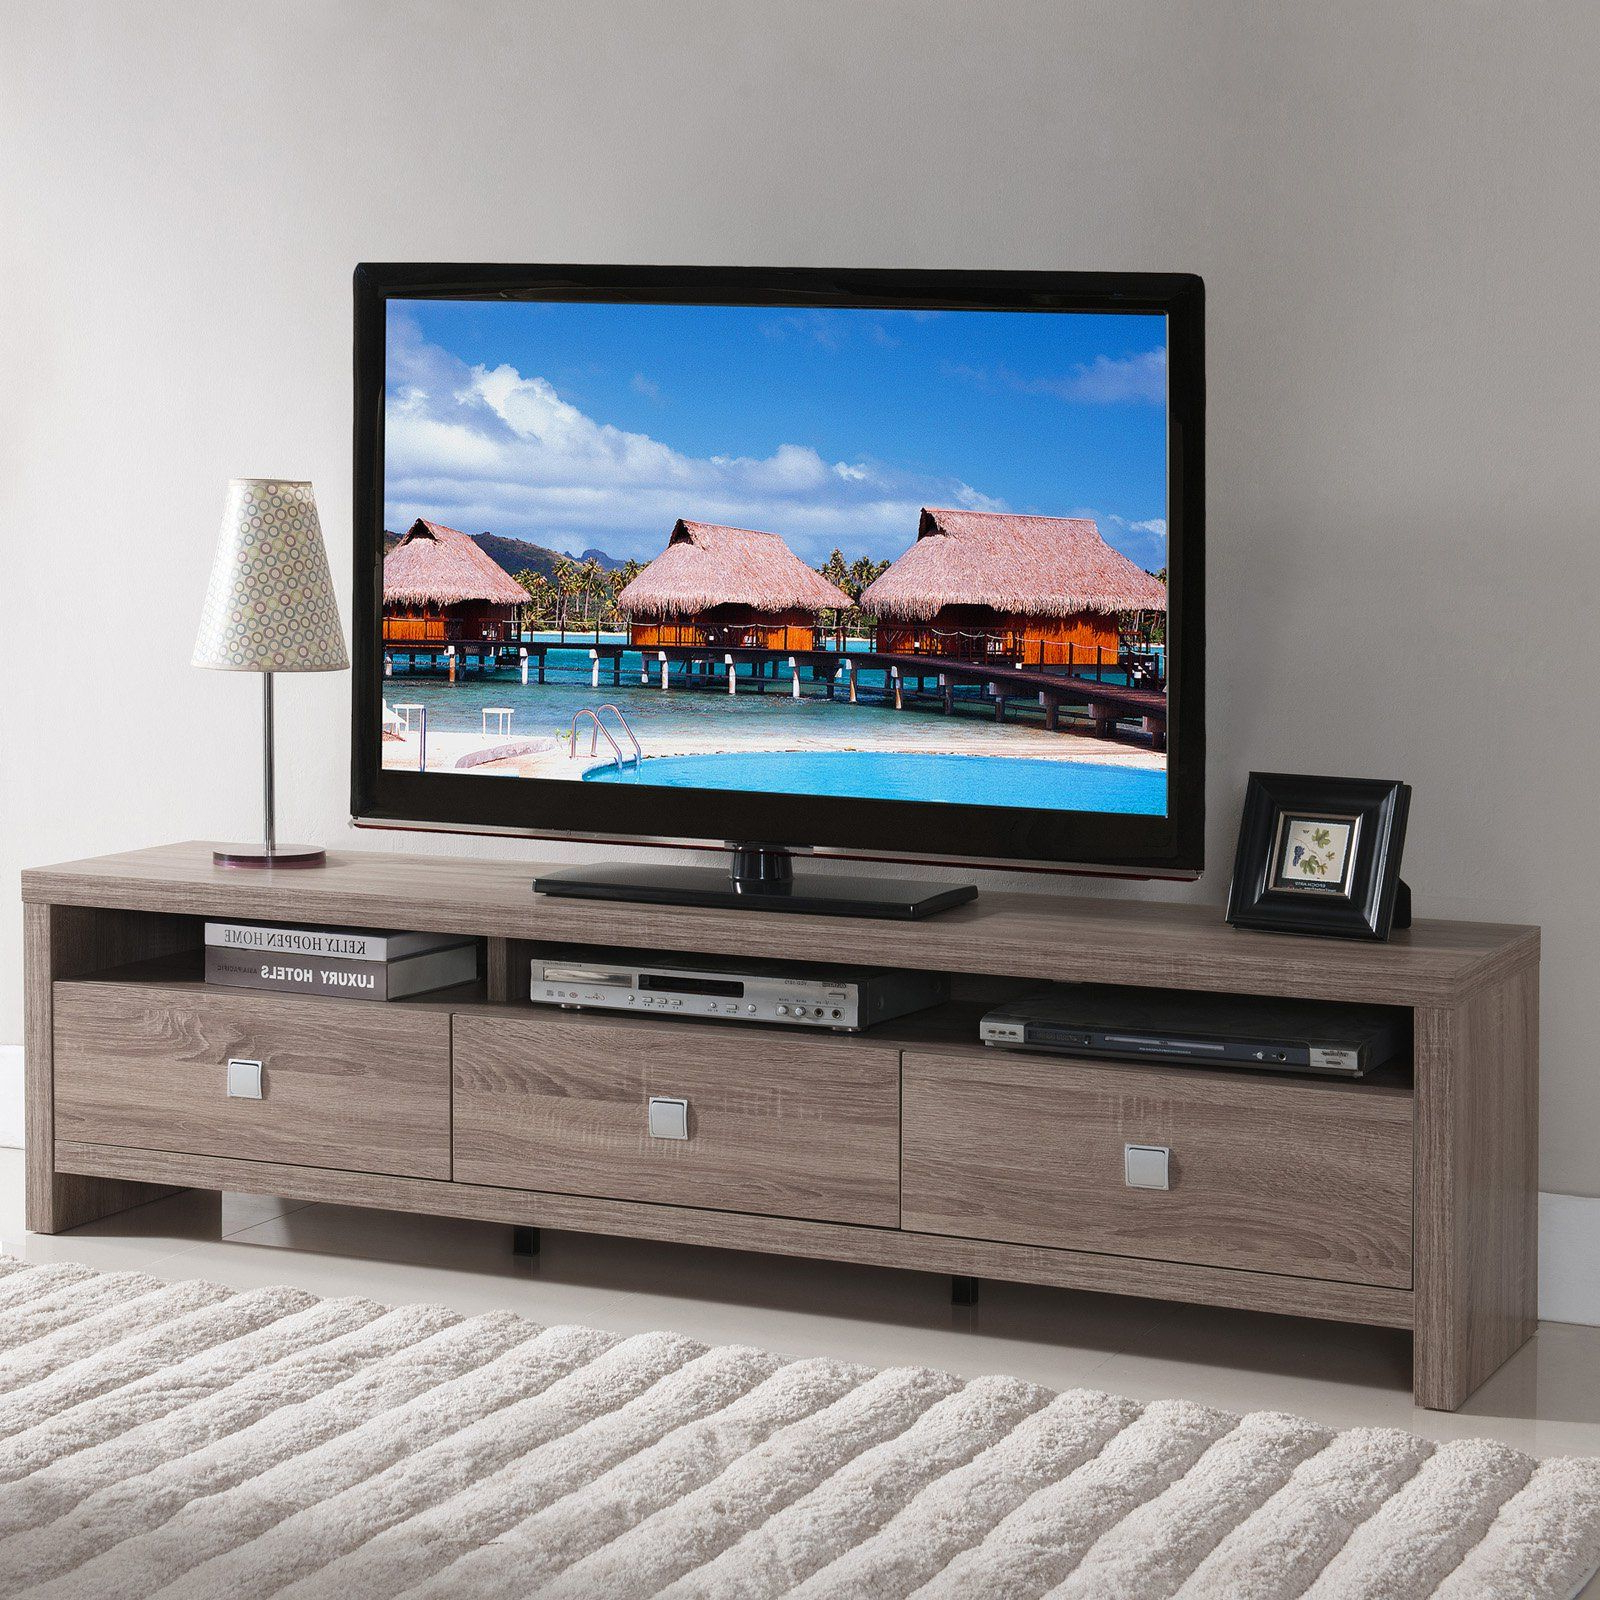 Furniture Of America Contemporary Tv Stand | From Hayneedle Inside Kenzie 72 Inch Open Display Tv Stands (View 12 of 20)